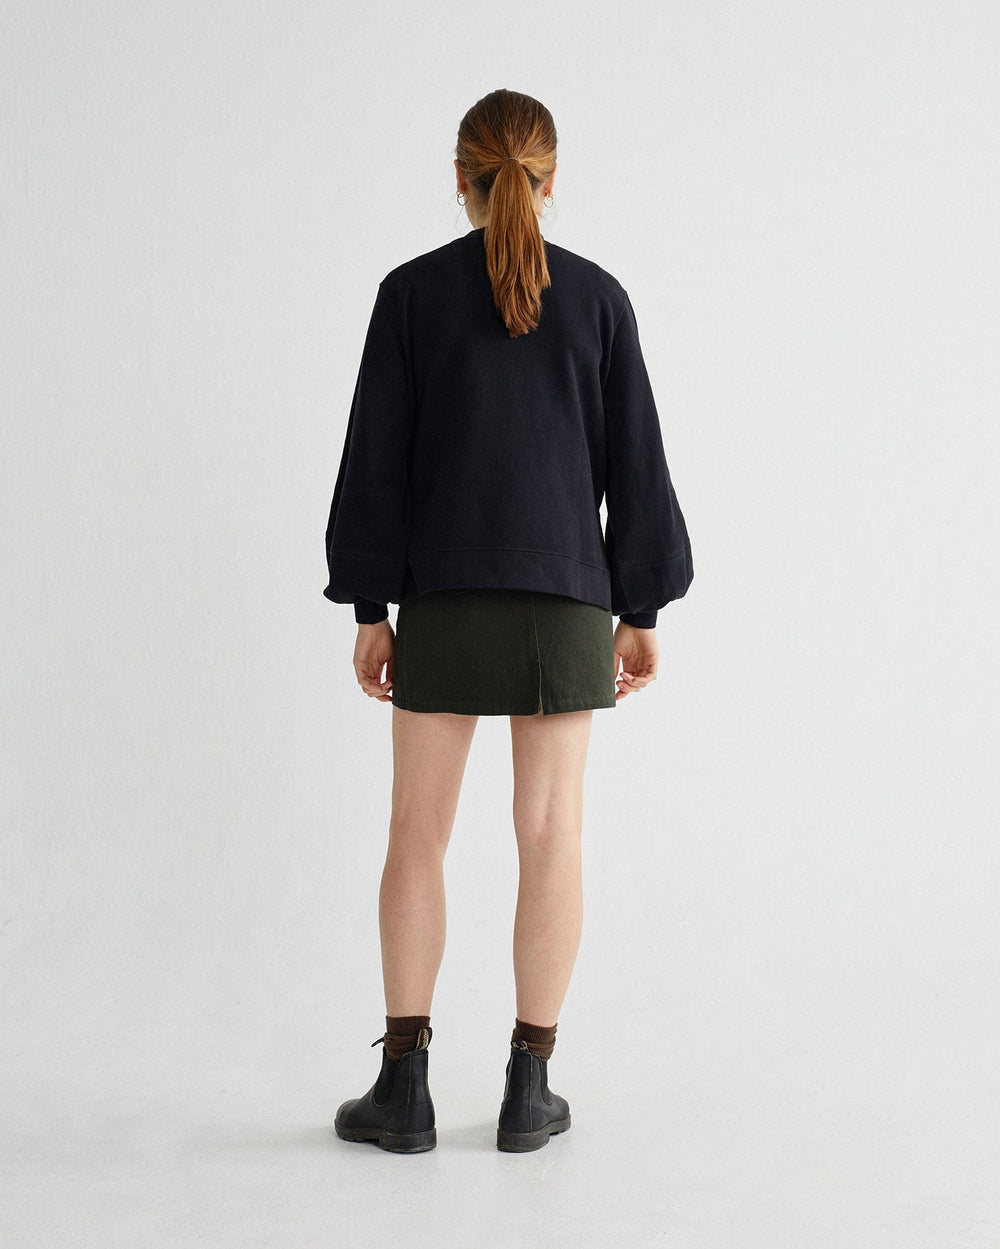 Thinking Mu Skirts & Shorts Jupe green Hemp Rhea